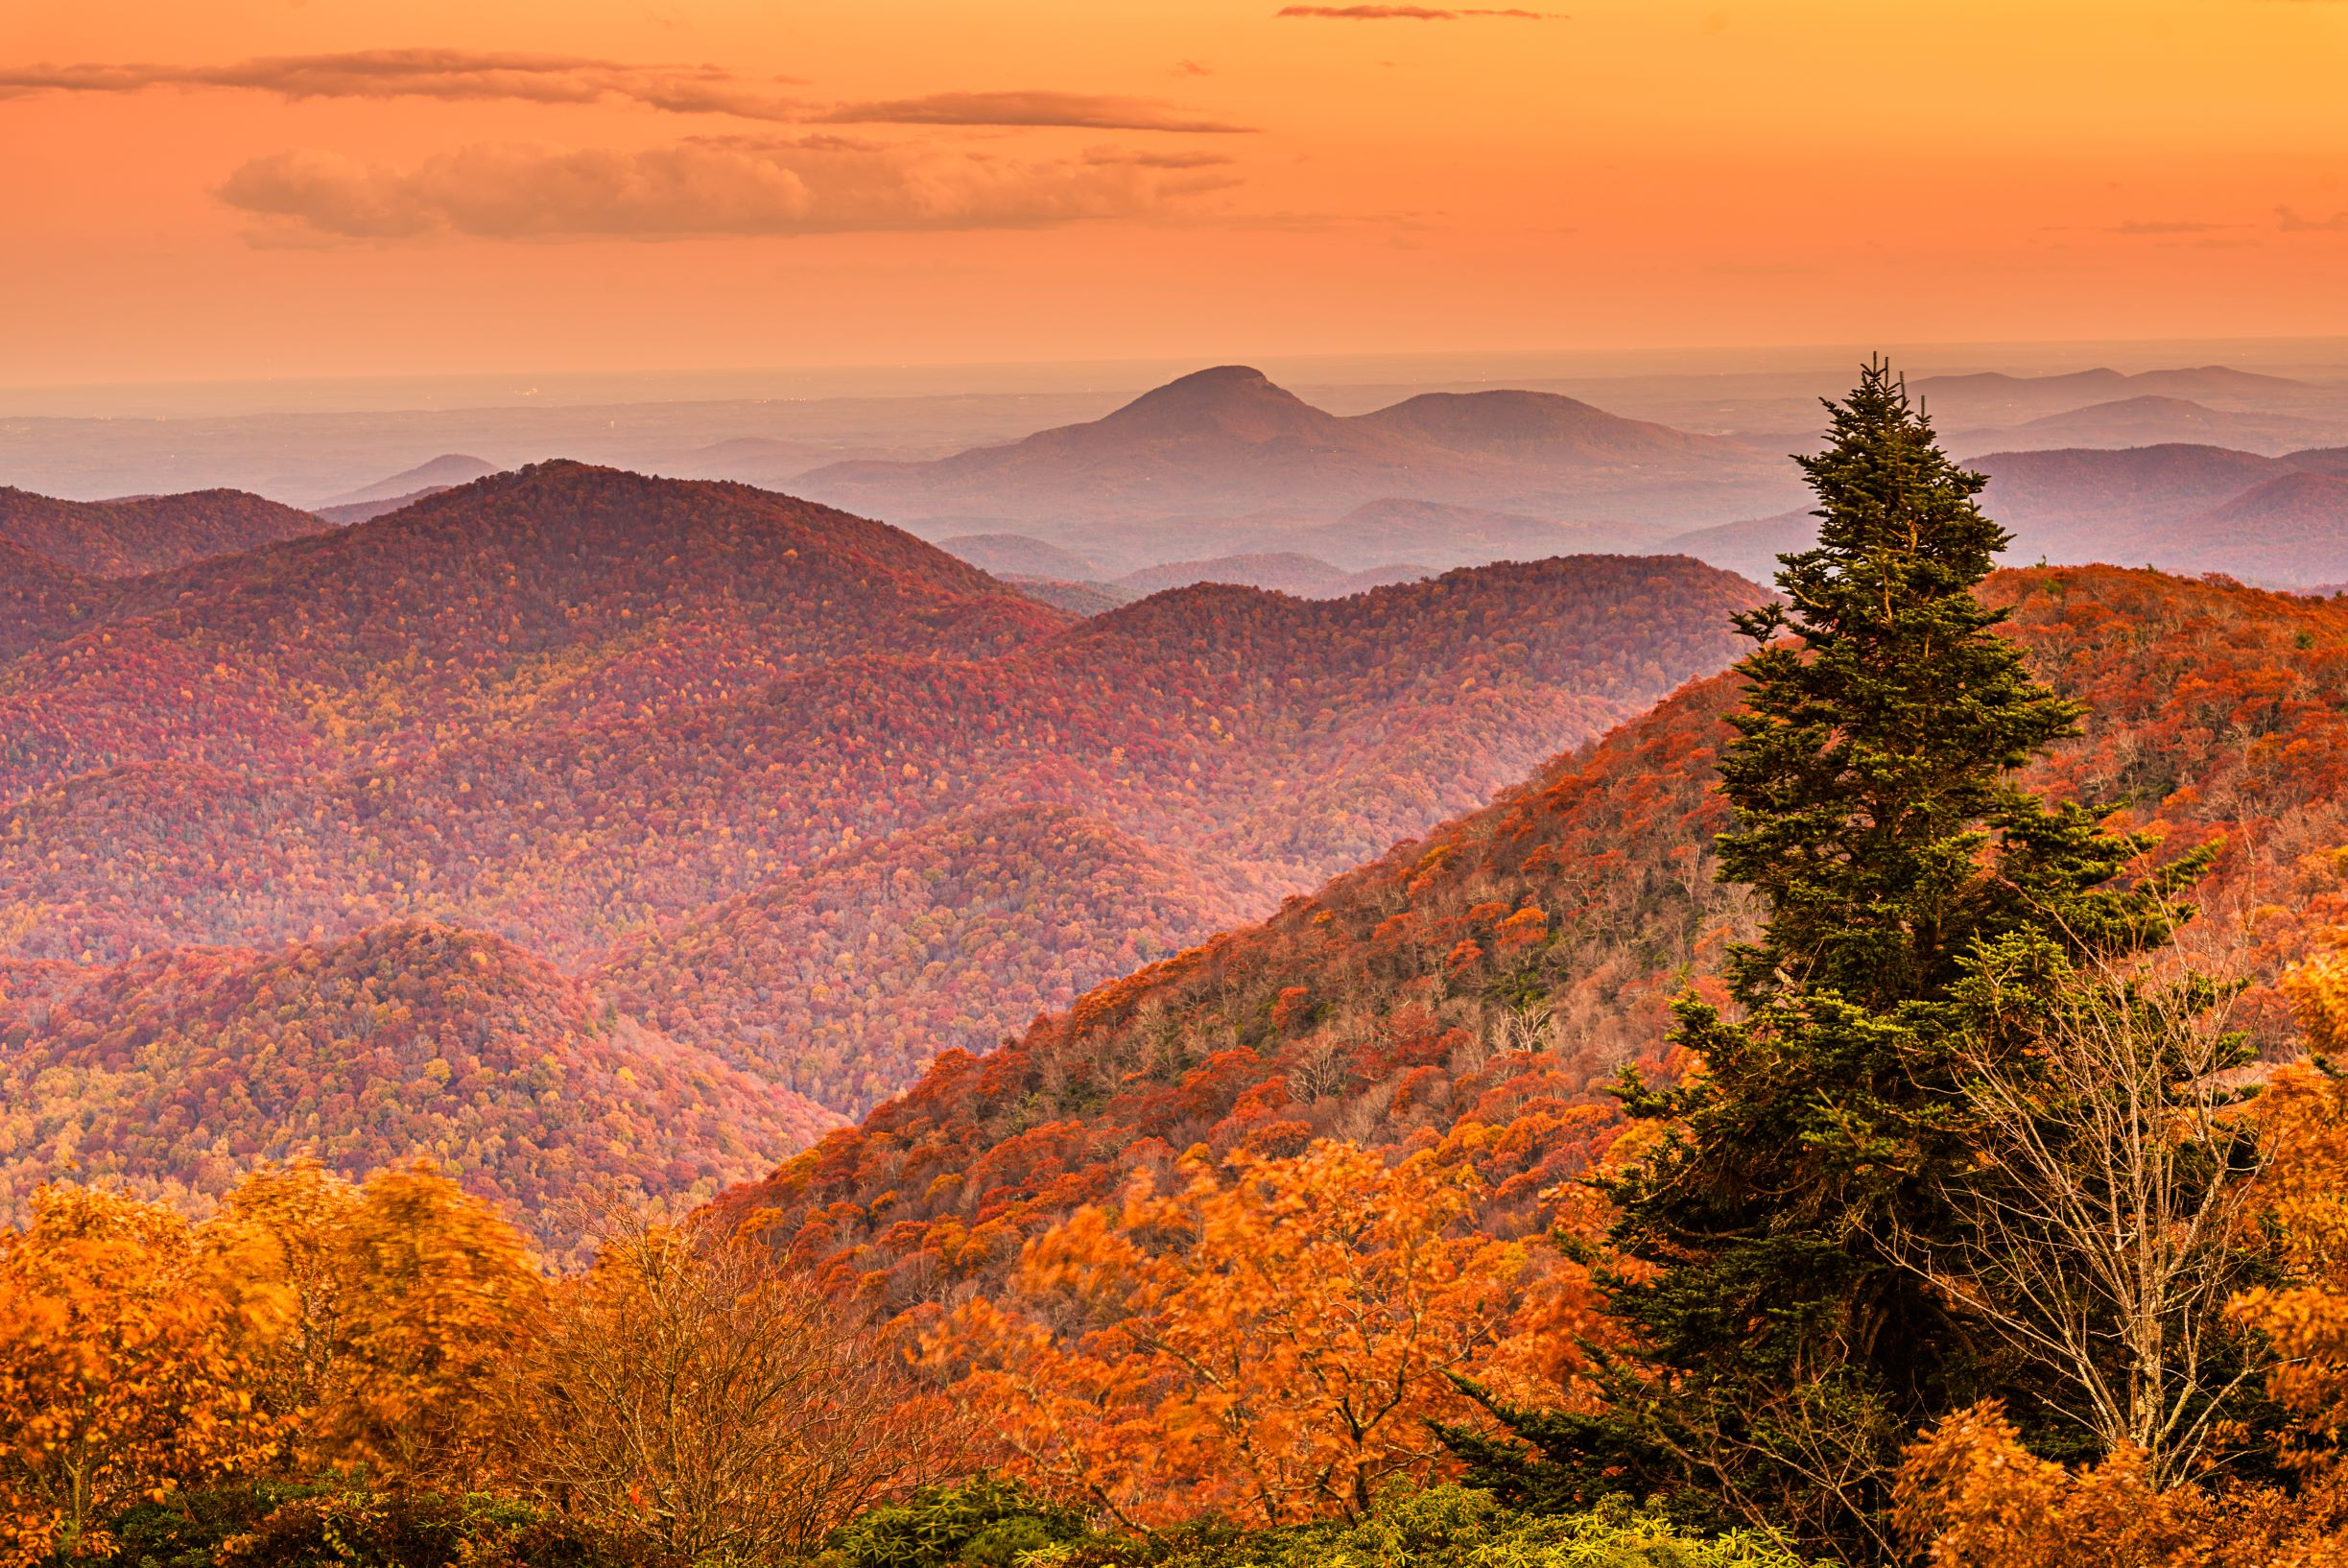 Photo from Brasstown Bald in Georgia showing fall foliage.